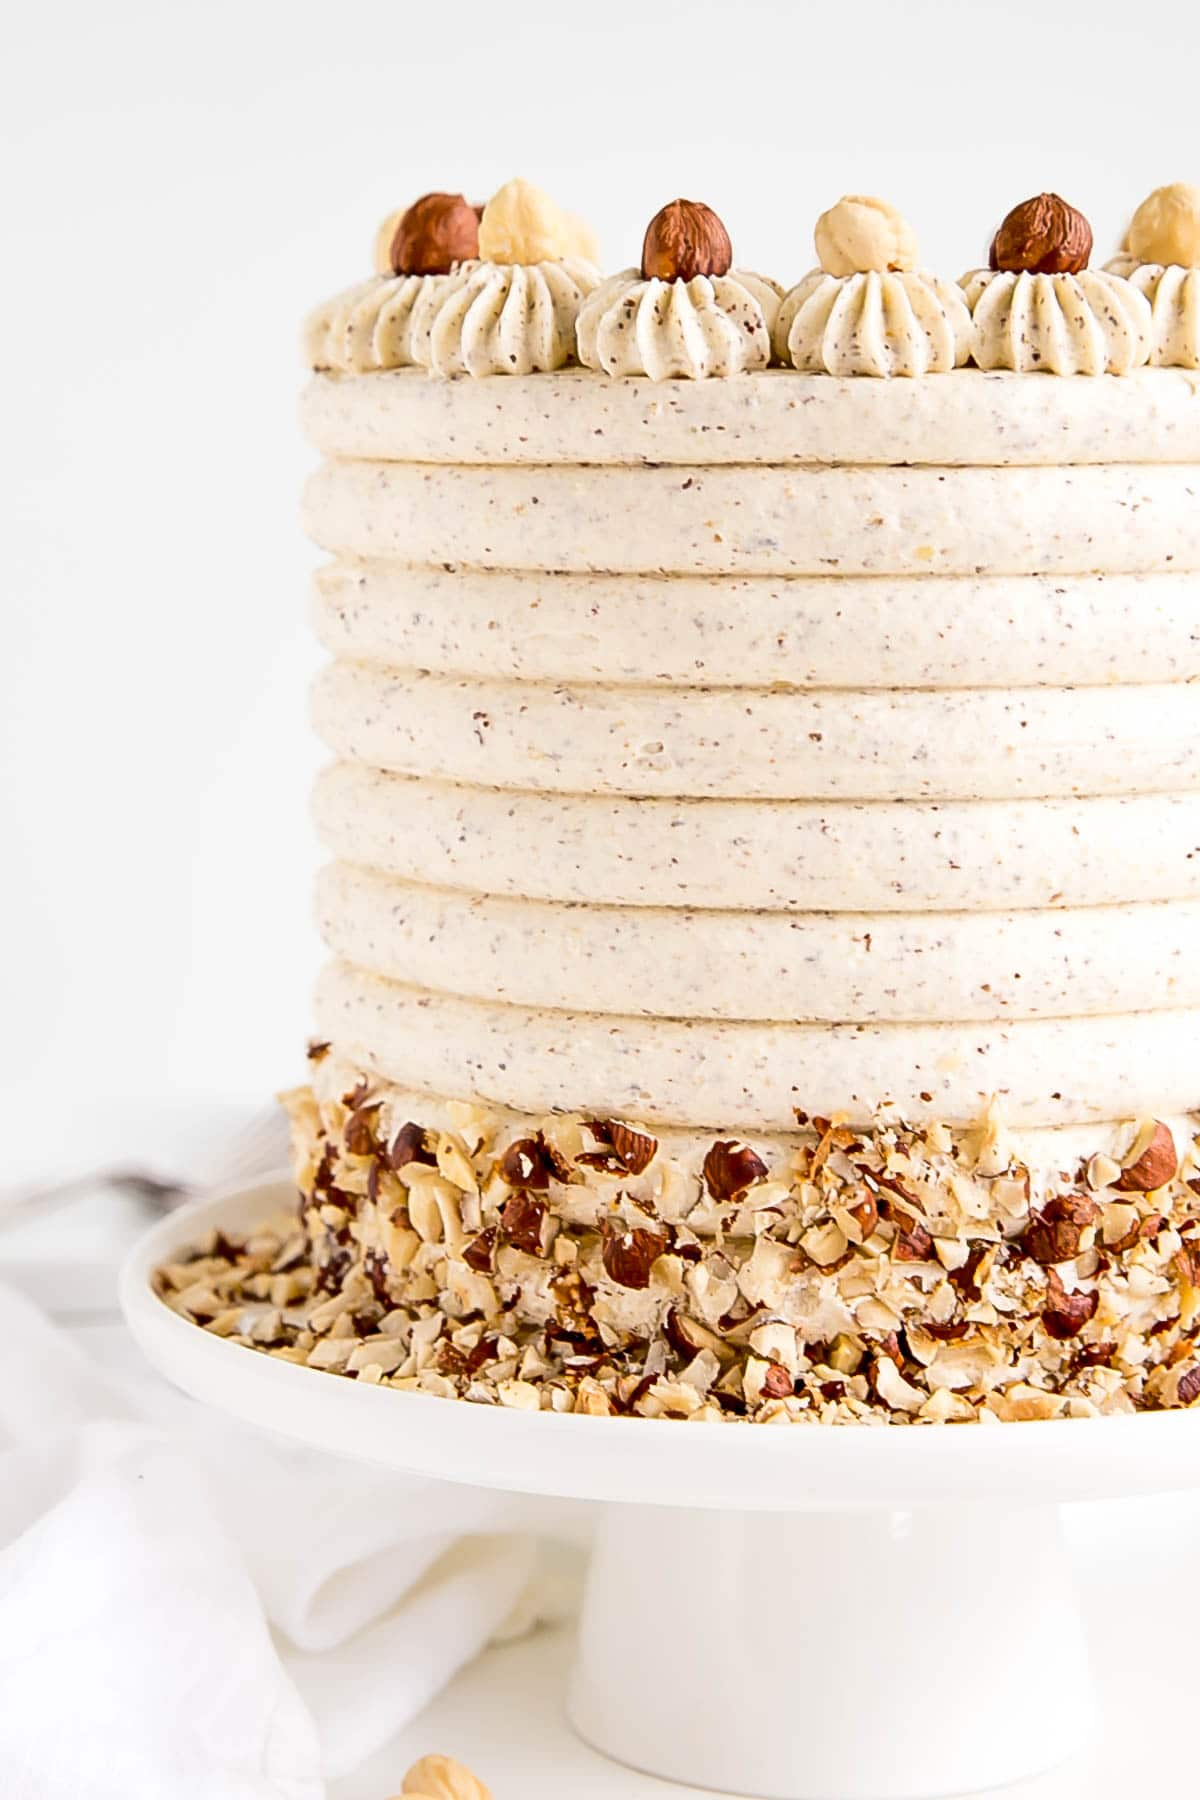 Close up of the side of the cake showing cake combed detail.